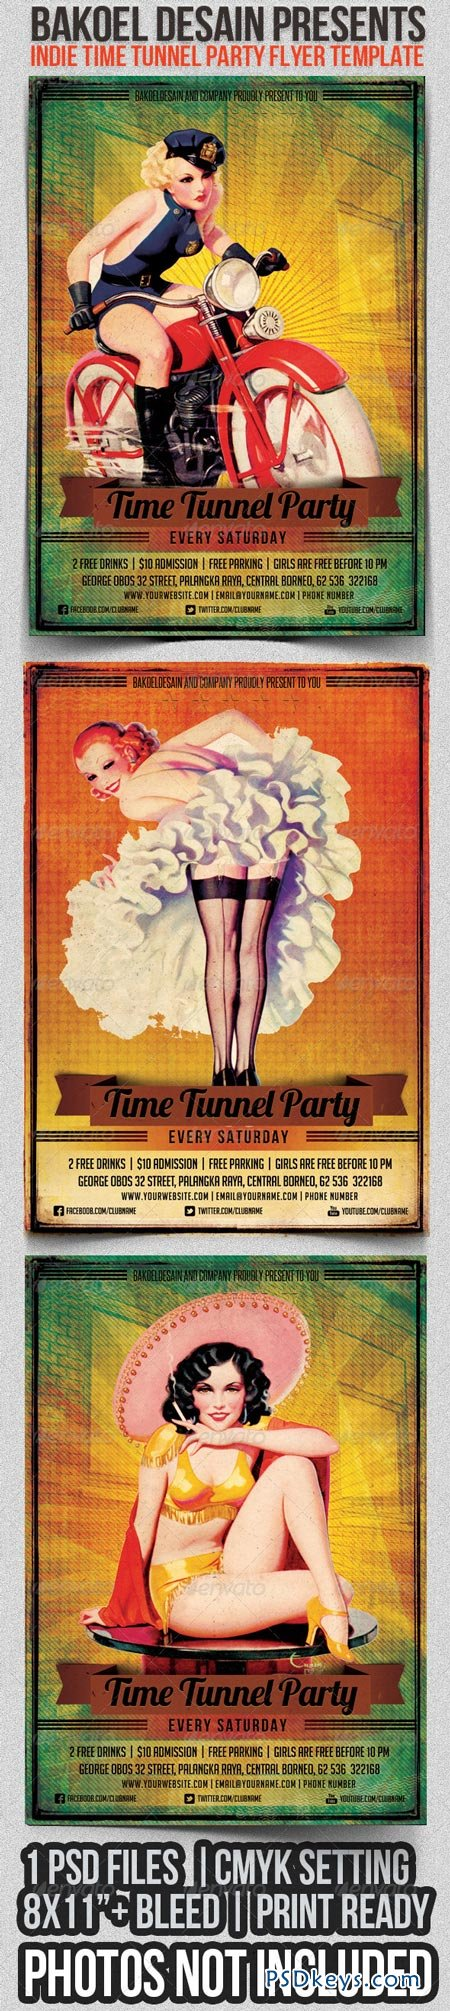 Indie Time Tunnel Party Flyer Template 2773443